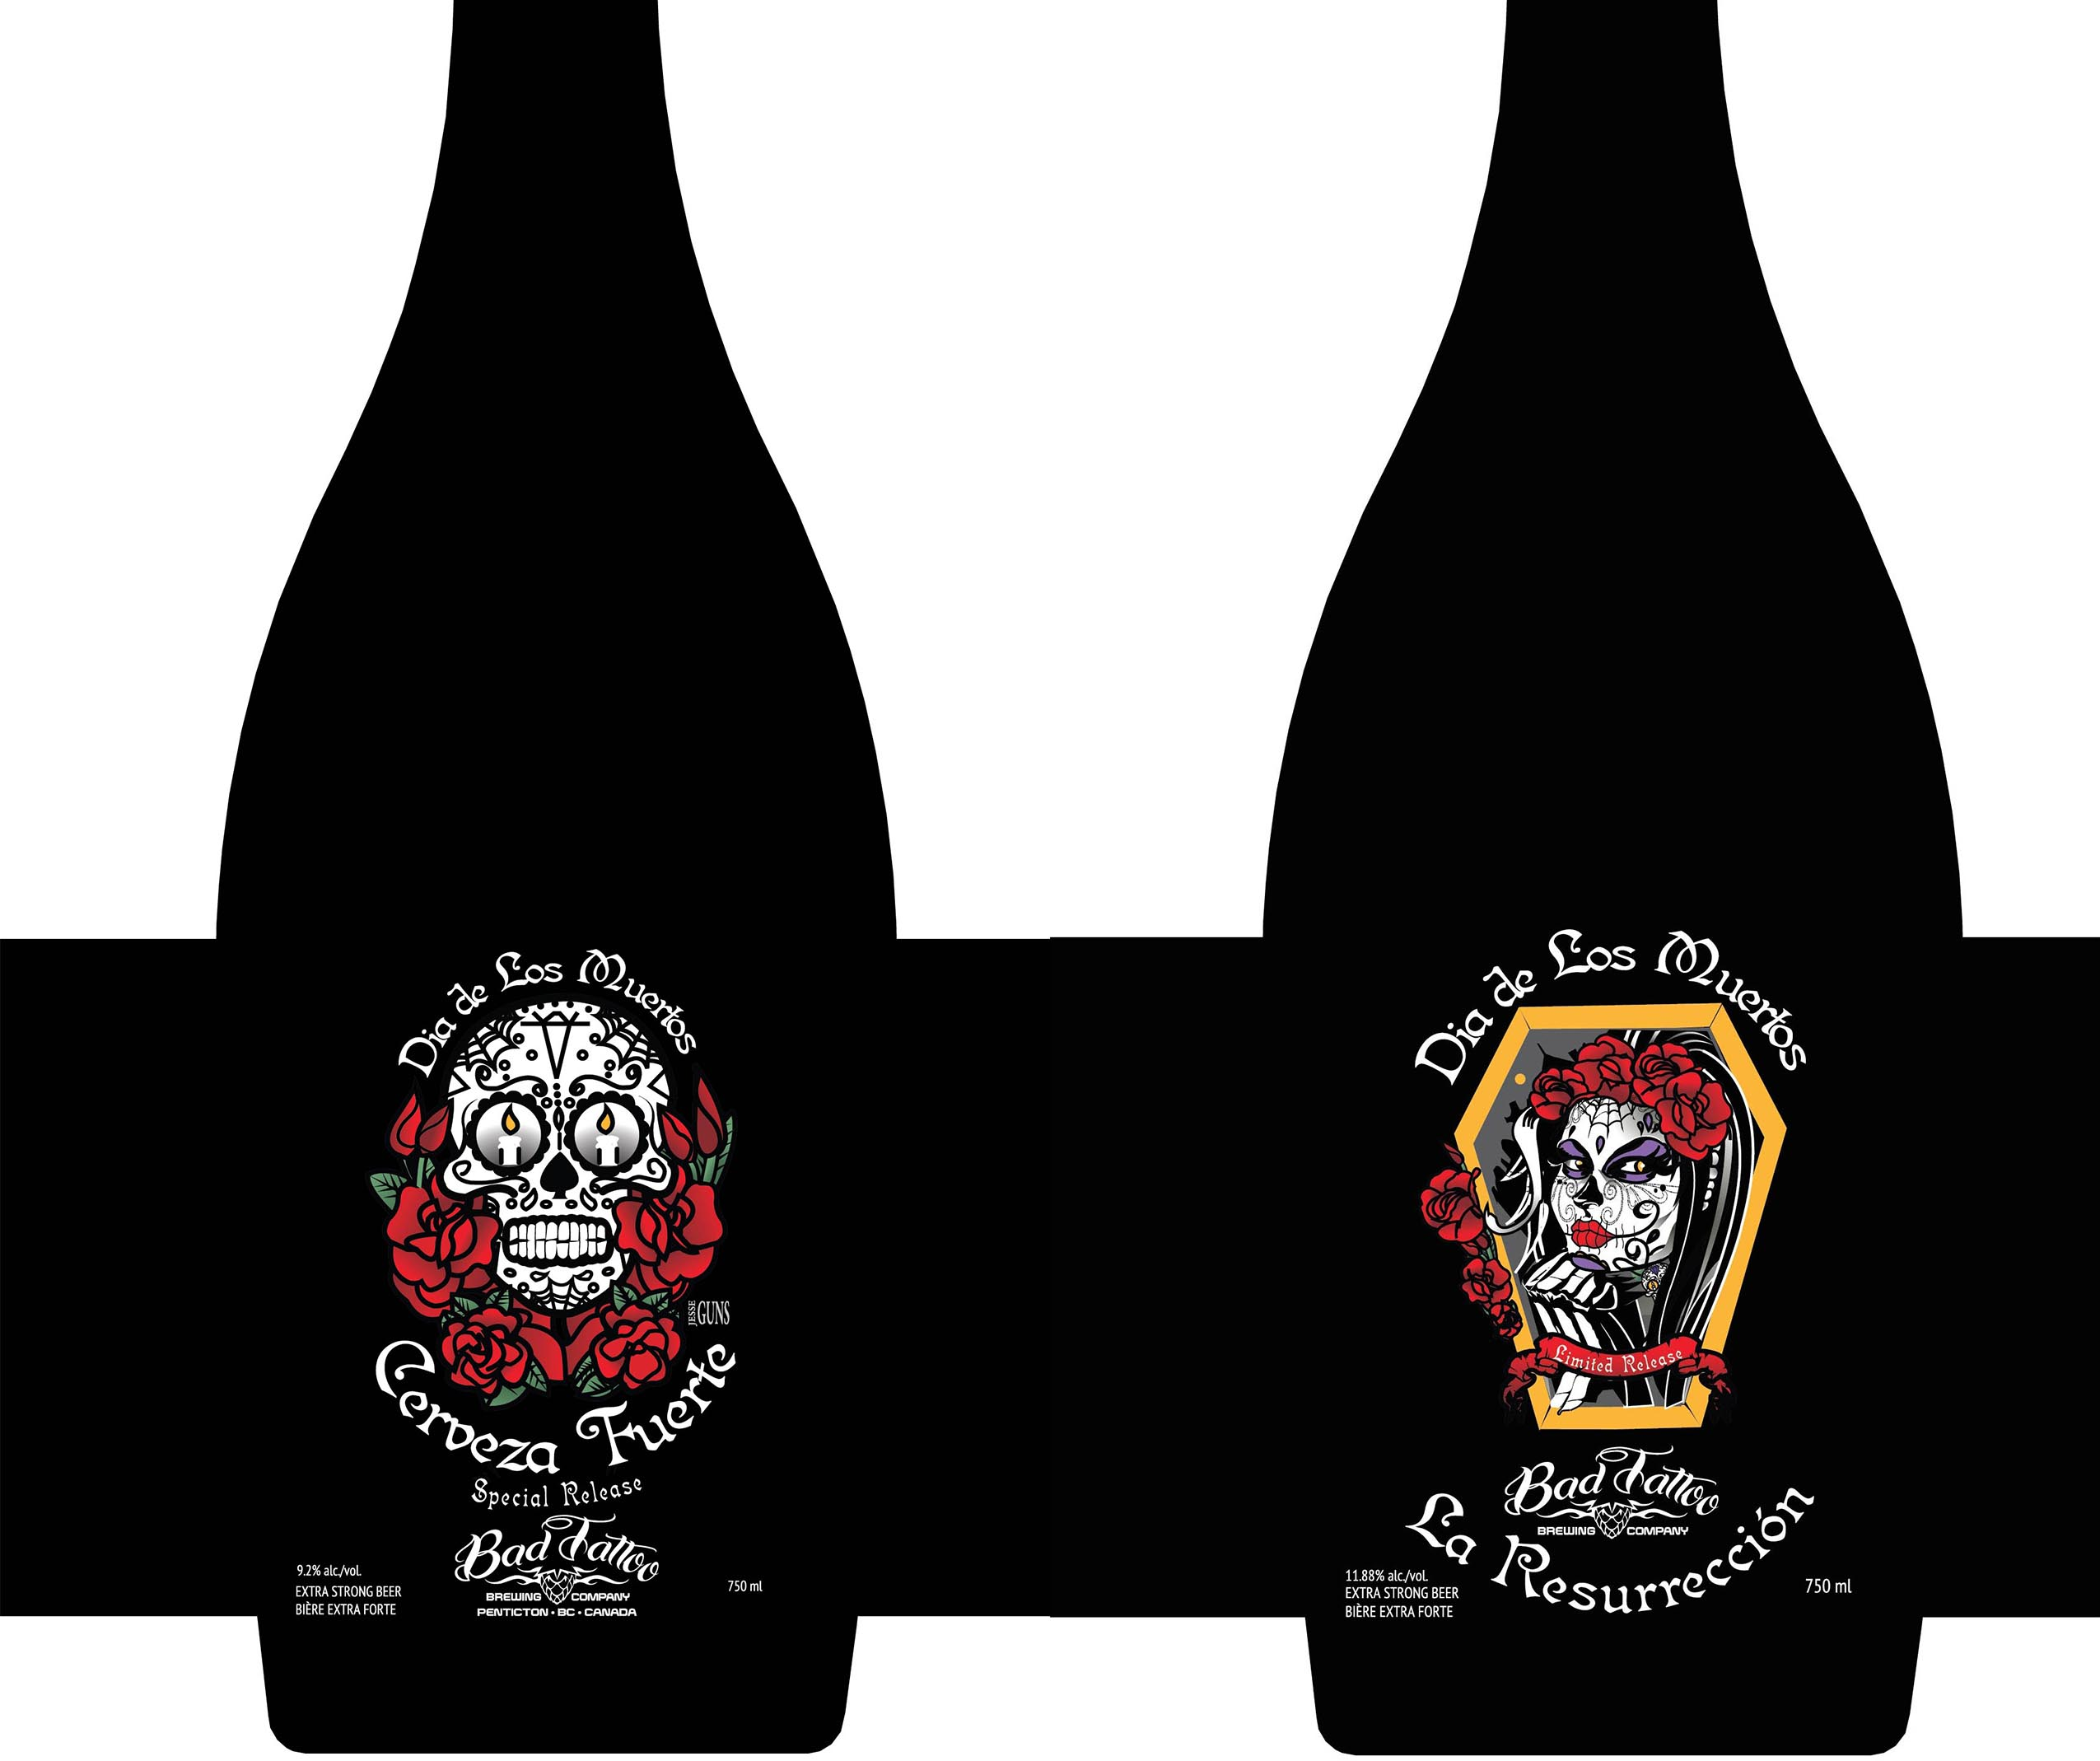 New Beers for release at Bad Tattoo on Nov 1, 2015